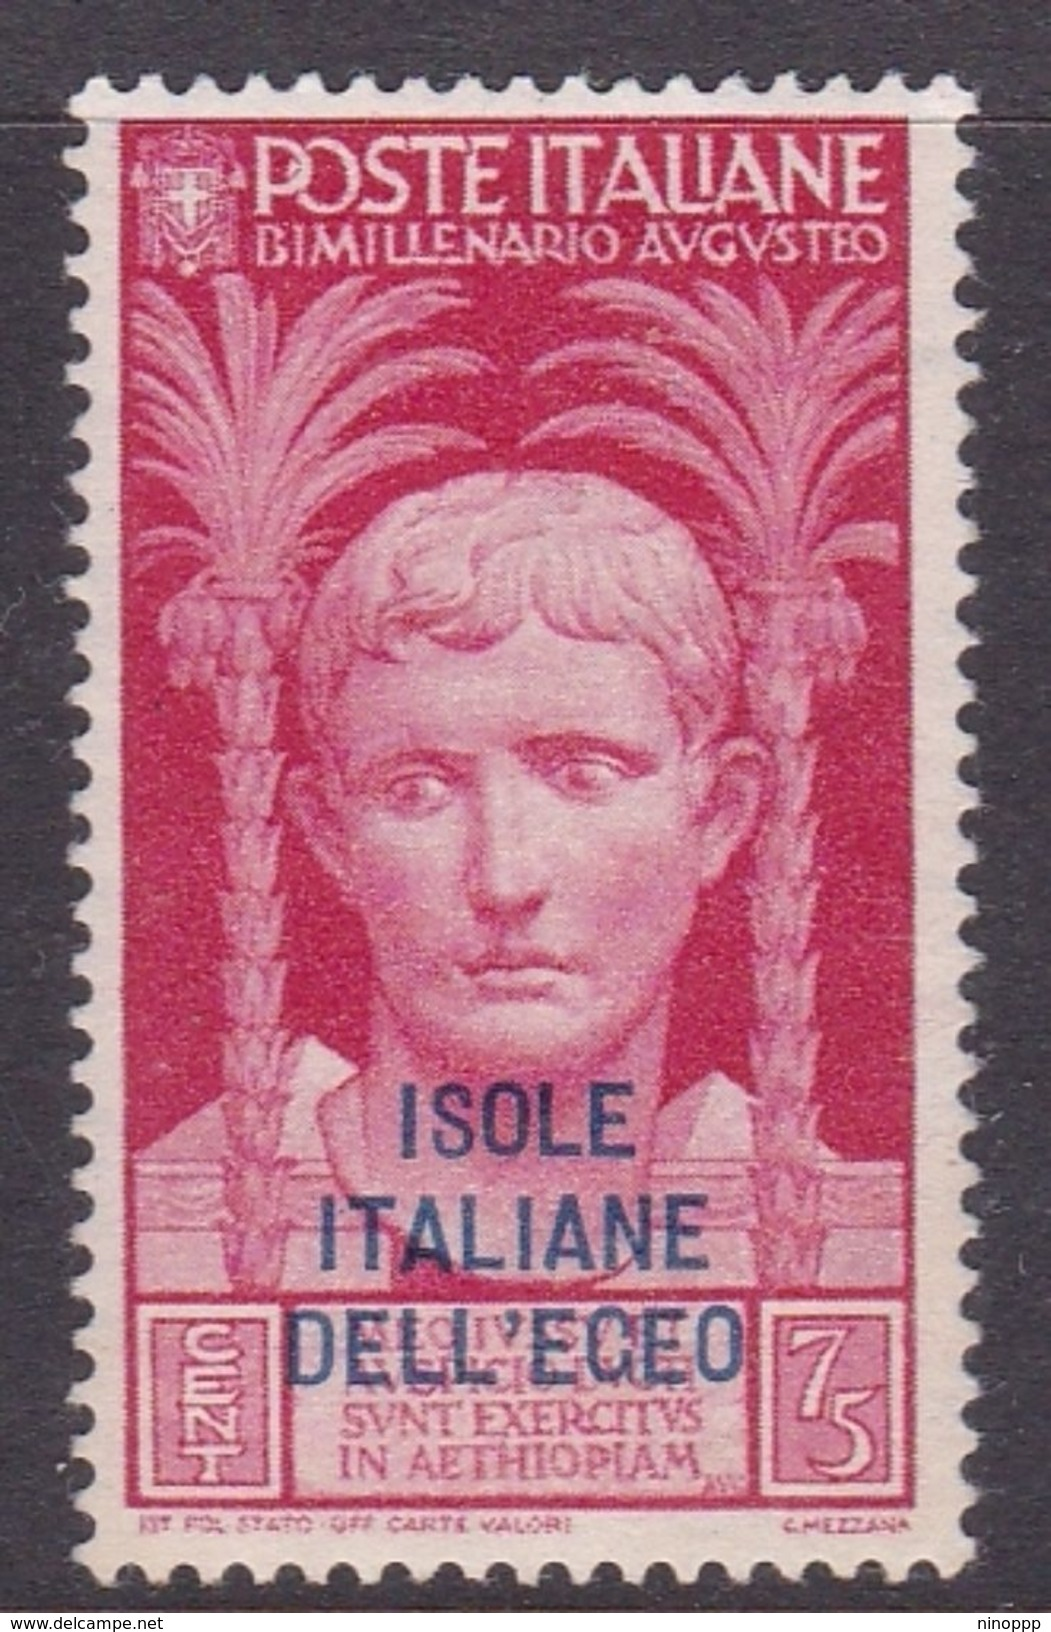 Italy-Colonies And Territories-Aegean General Issue-Rodi S105 1938 Augustus 75c Red MH - General Issues